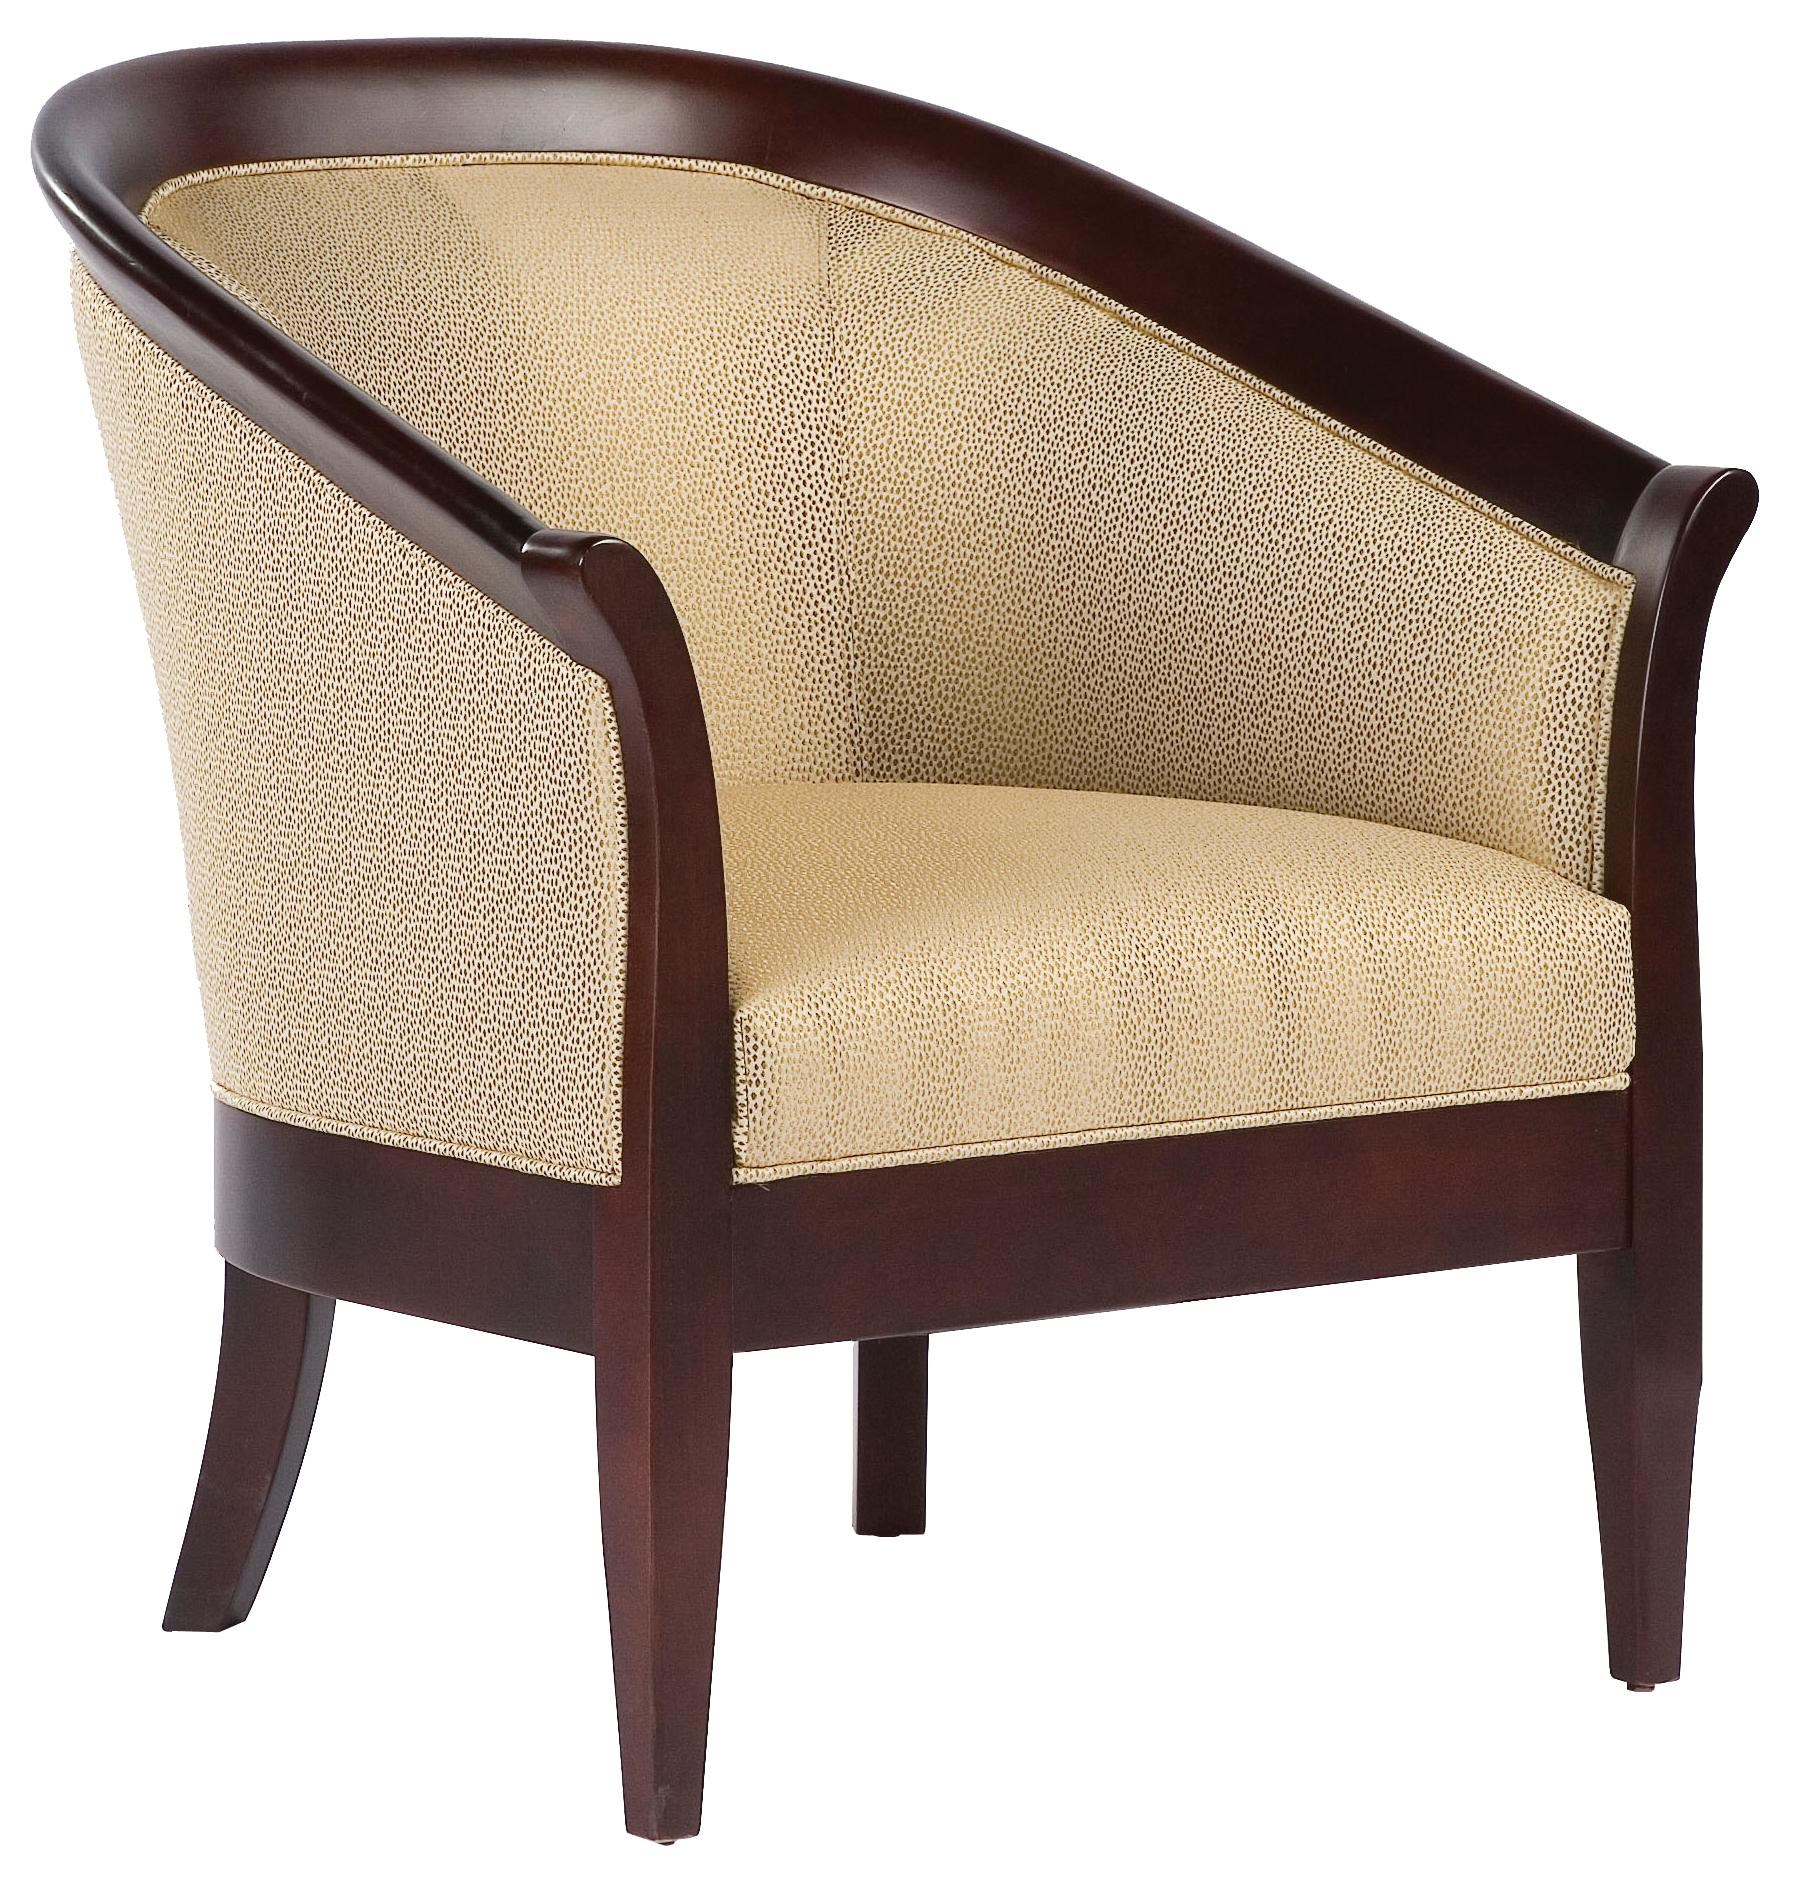 Attrayant Fairfield ChairsHigh Arm Wrap Around Chair